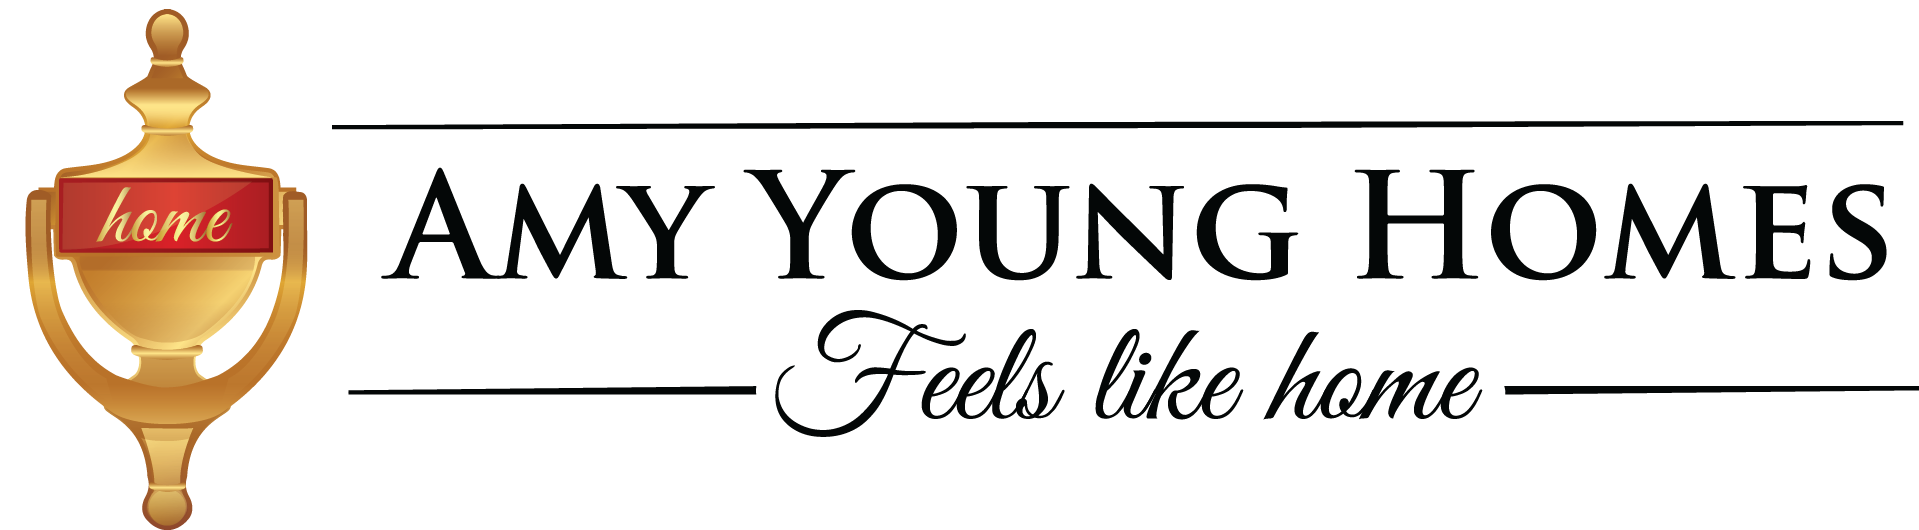 Amy Young Homes - Black Font Logo on the left side Transparent.png